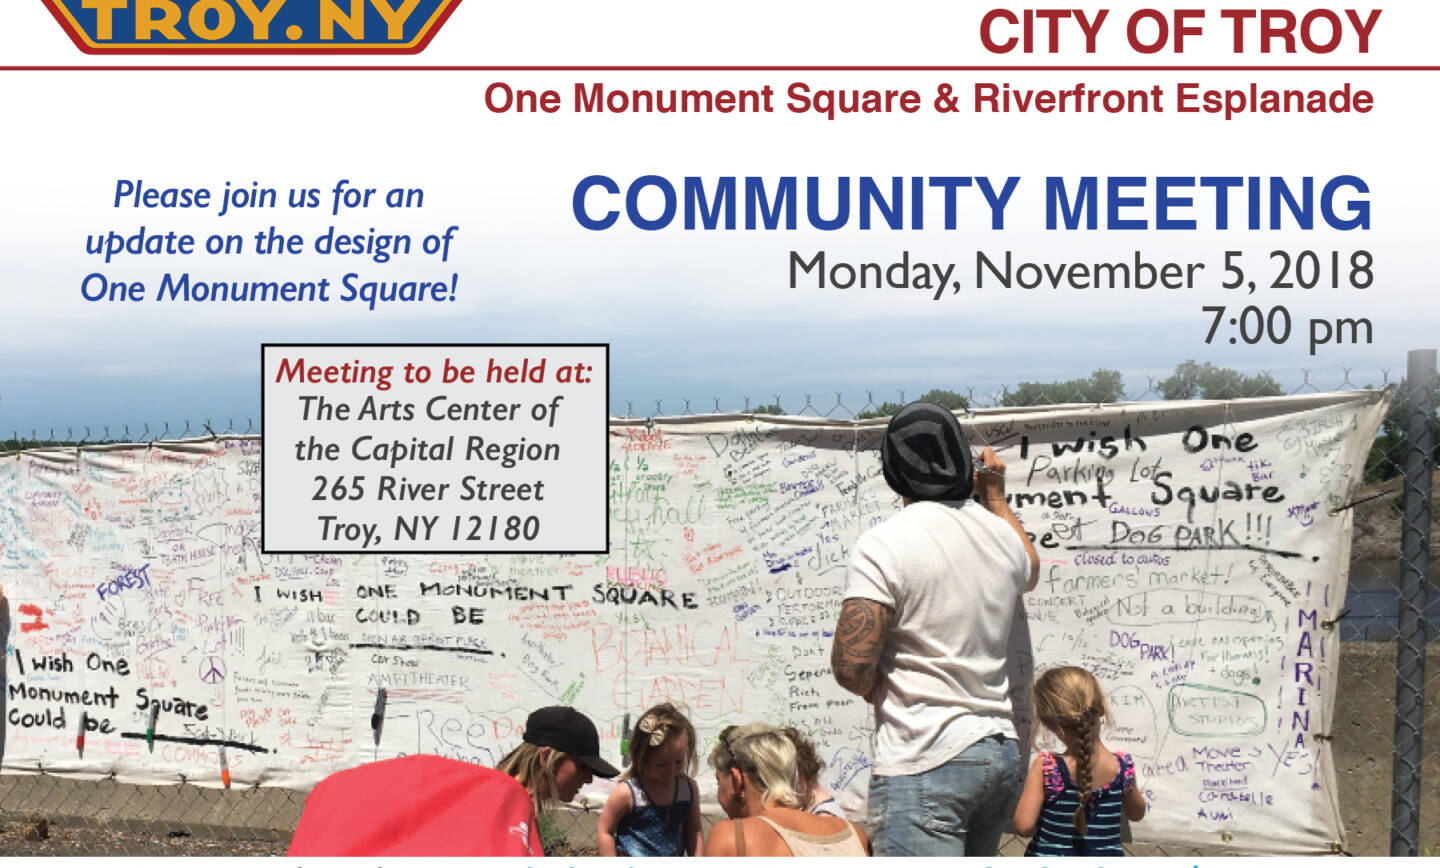 Mayor Madden: City to Update Public on One Monument Square Project